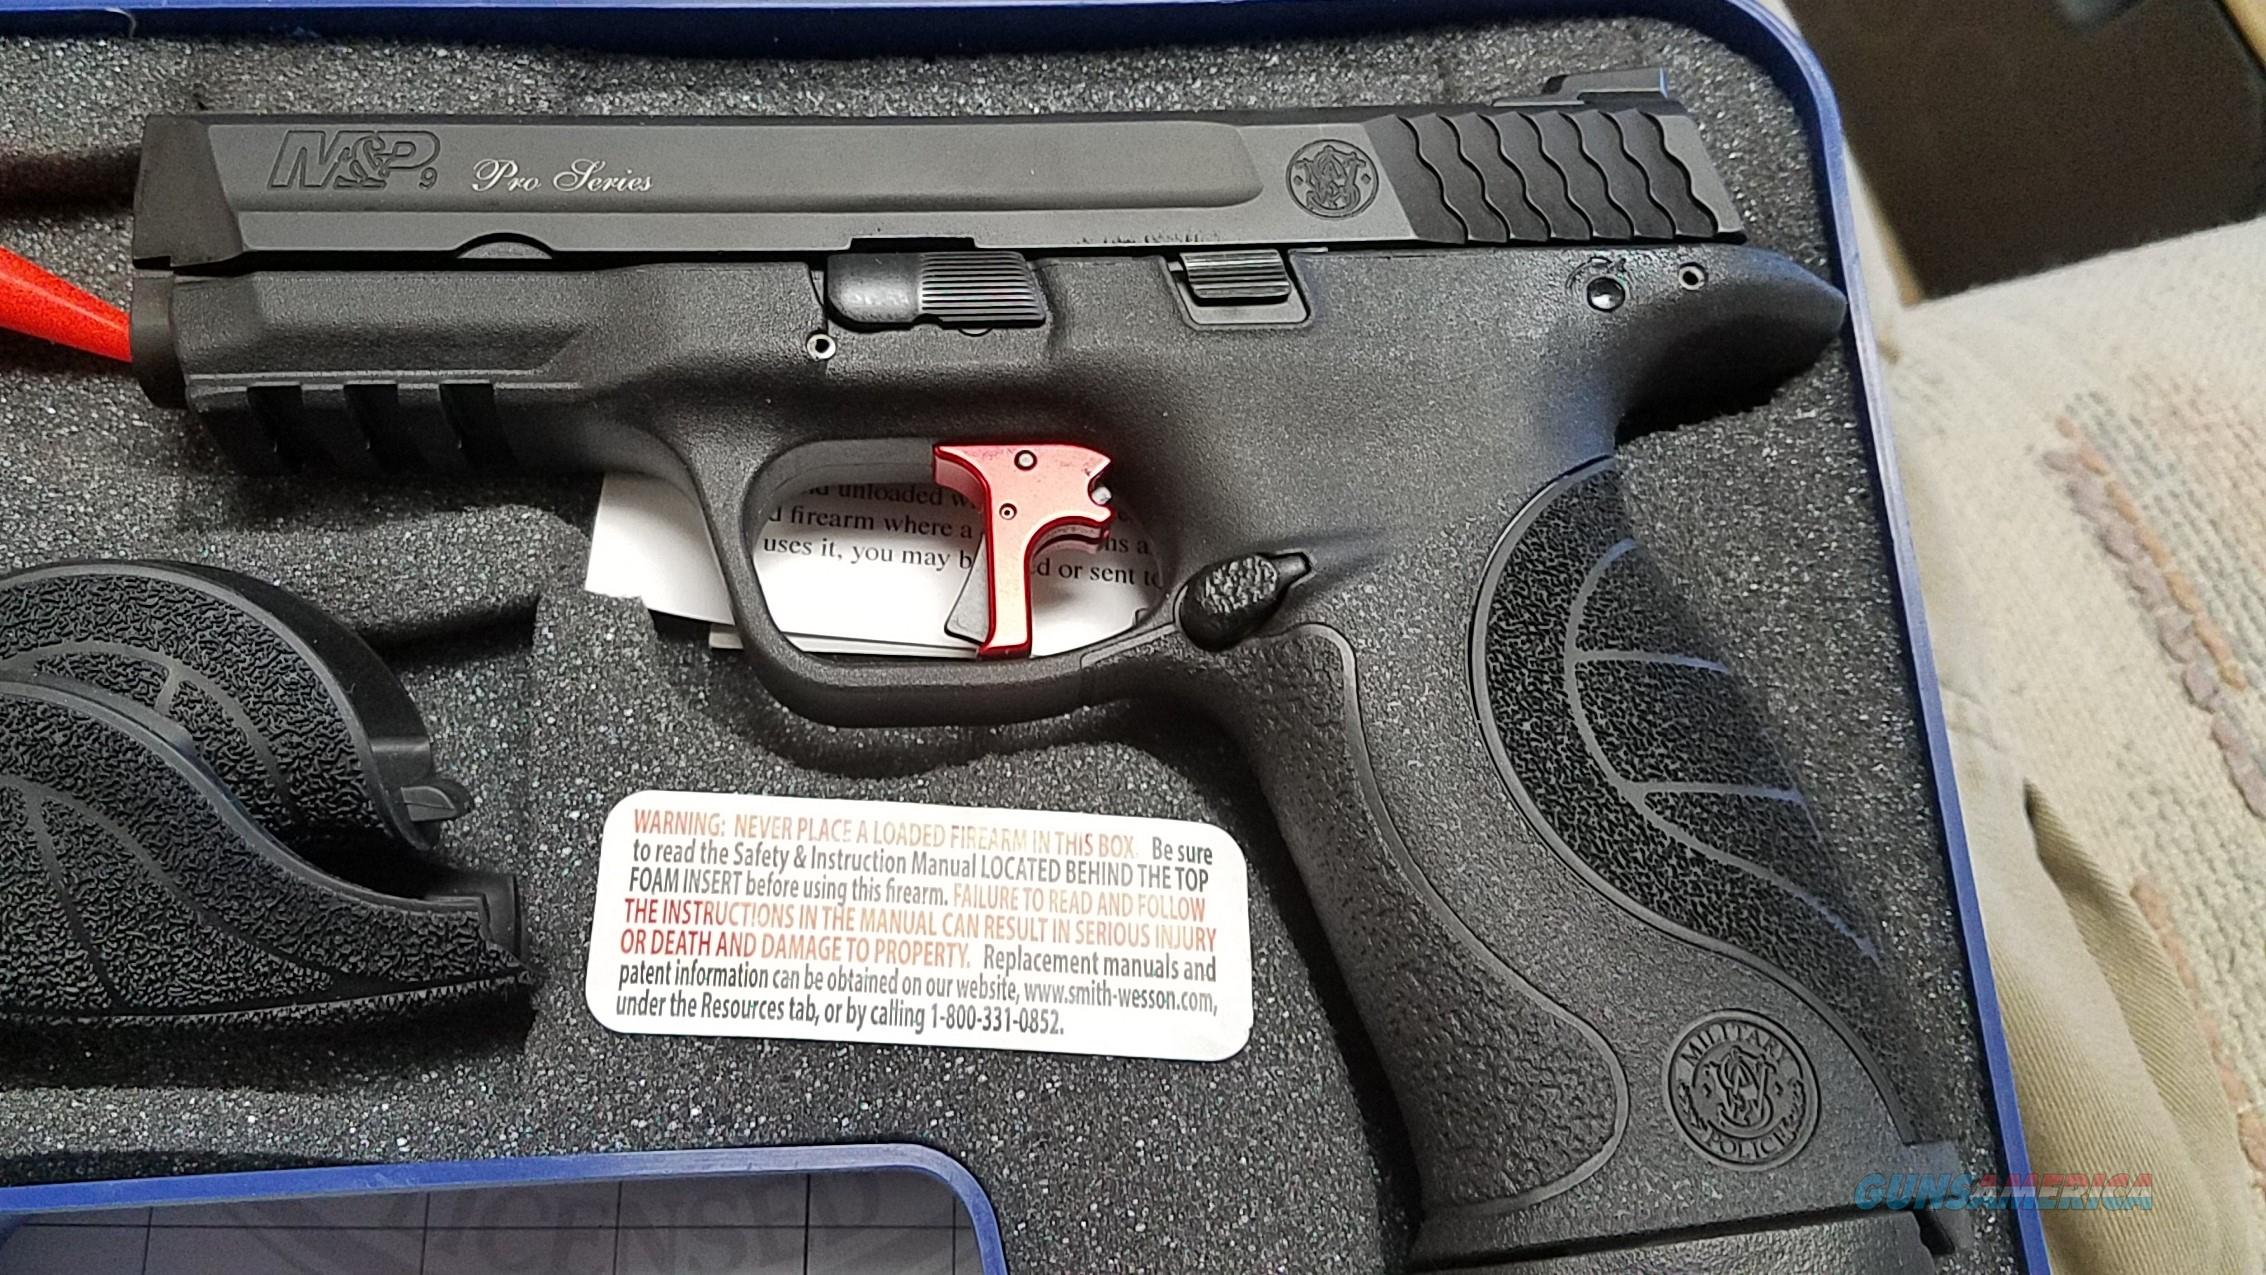 Smith & Wesson M&P Pro Series with Red Apex Trigger  Guns > Pistols > Smith & Wesson Pistols - Autos > Polymer Frame